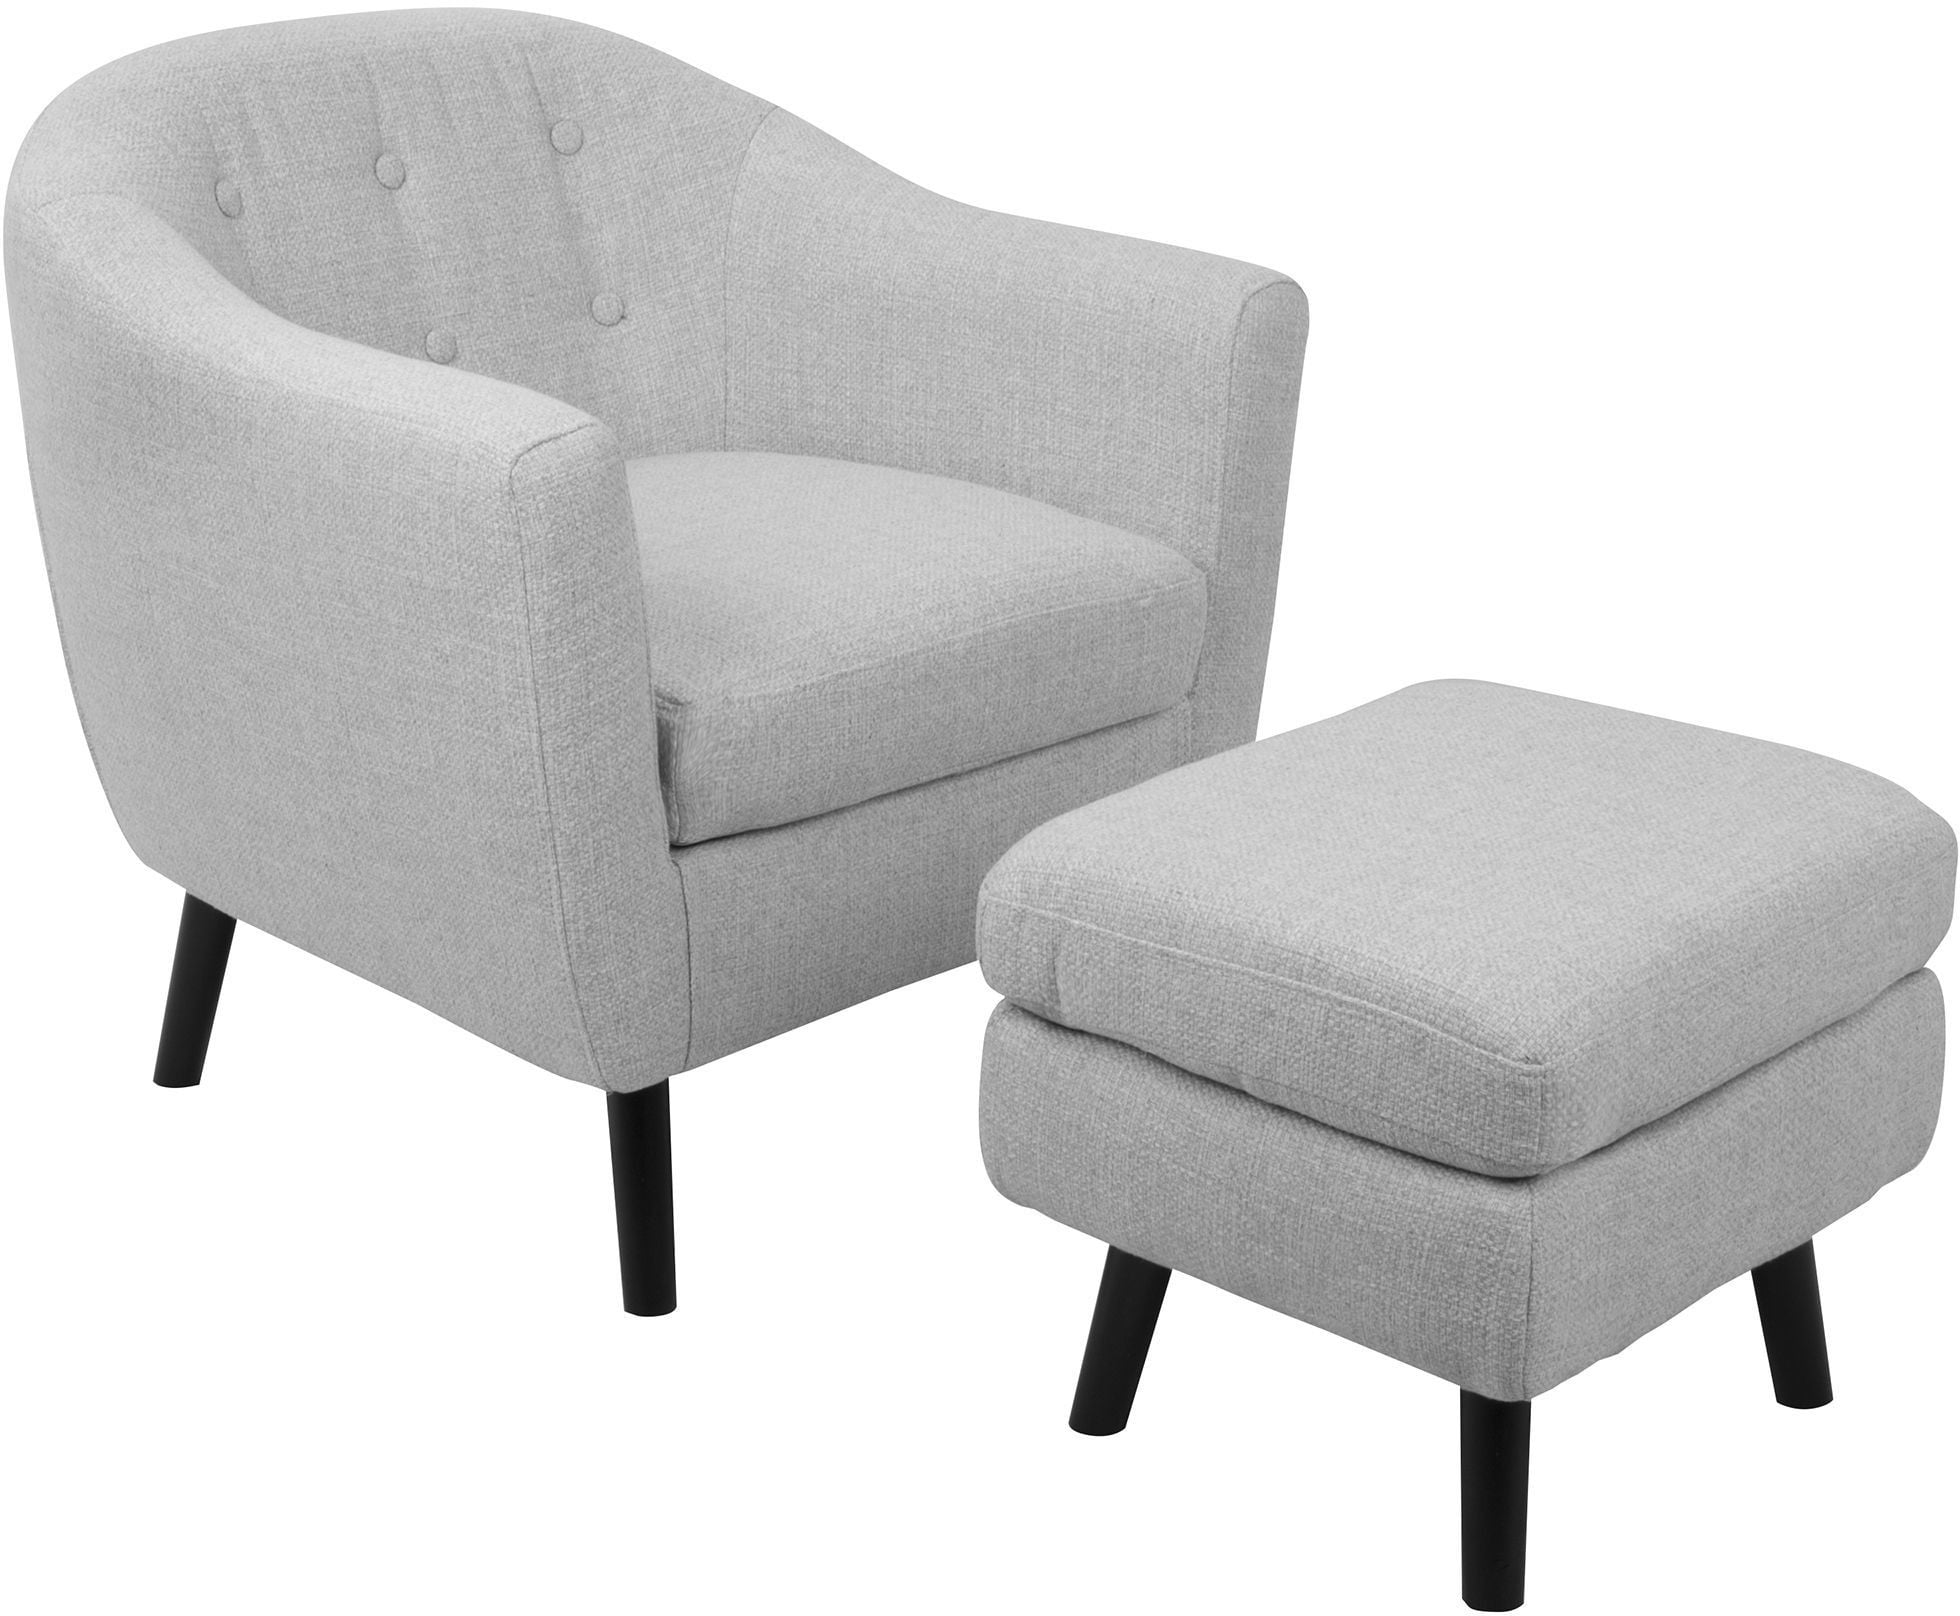 Light Gray Accent Chairs Rockwell Light Gray Accent Chair And Ottoman From